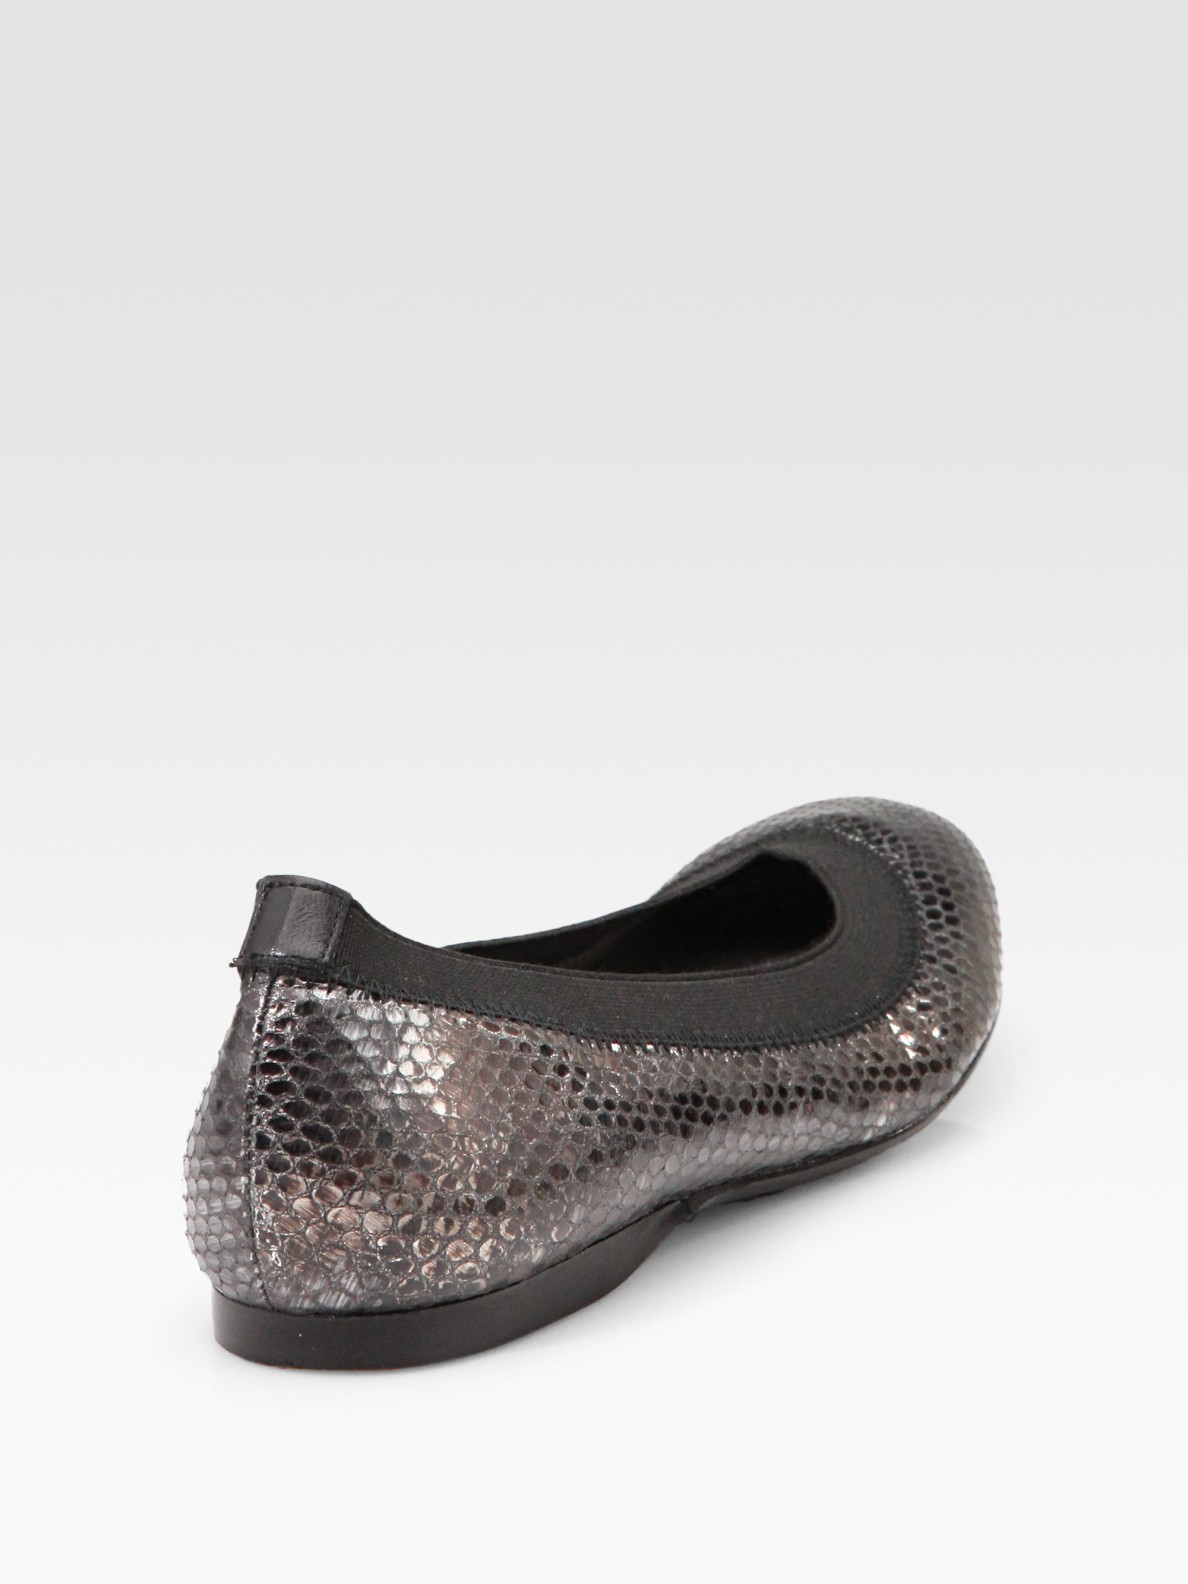 Stuart Weitzman Printed Leather Flats free shipping shop offer great deals cheap price lsVBH3